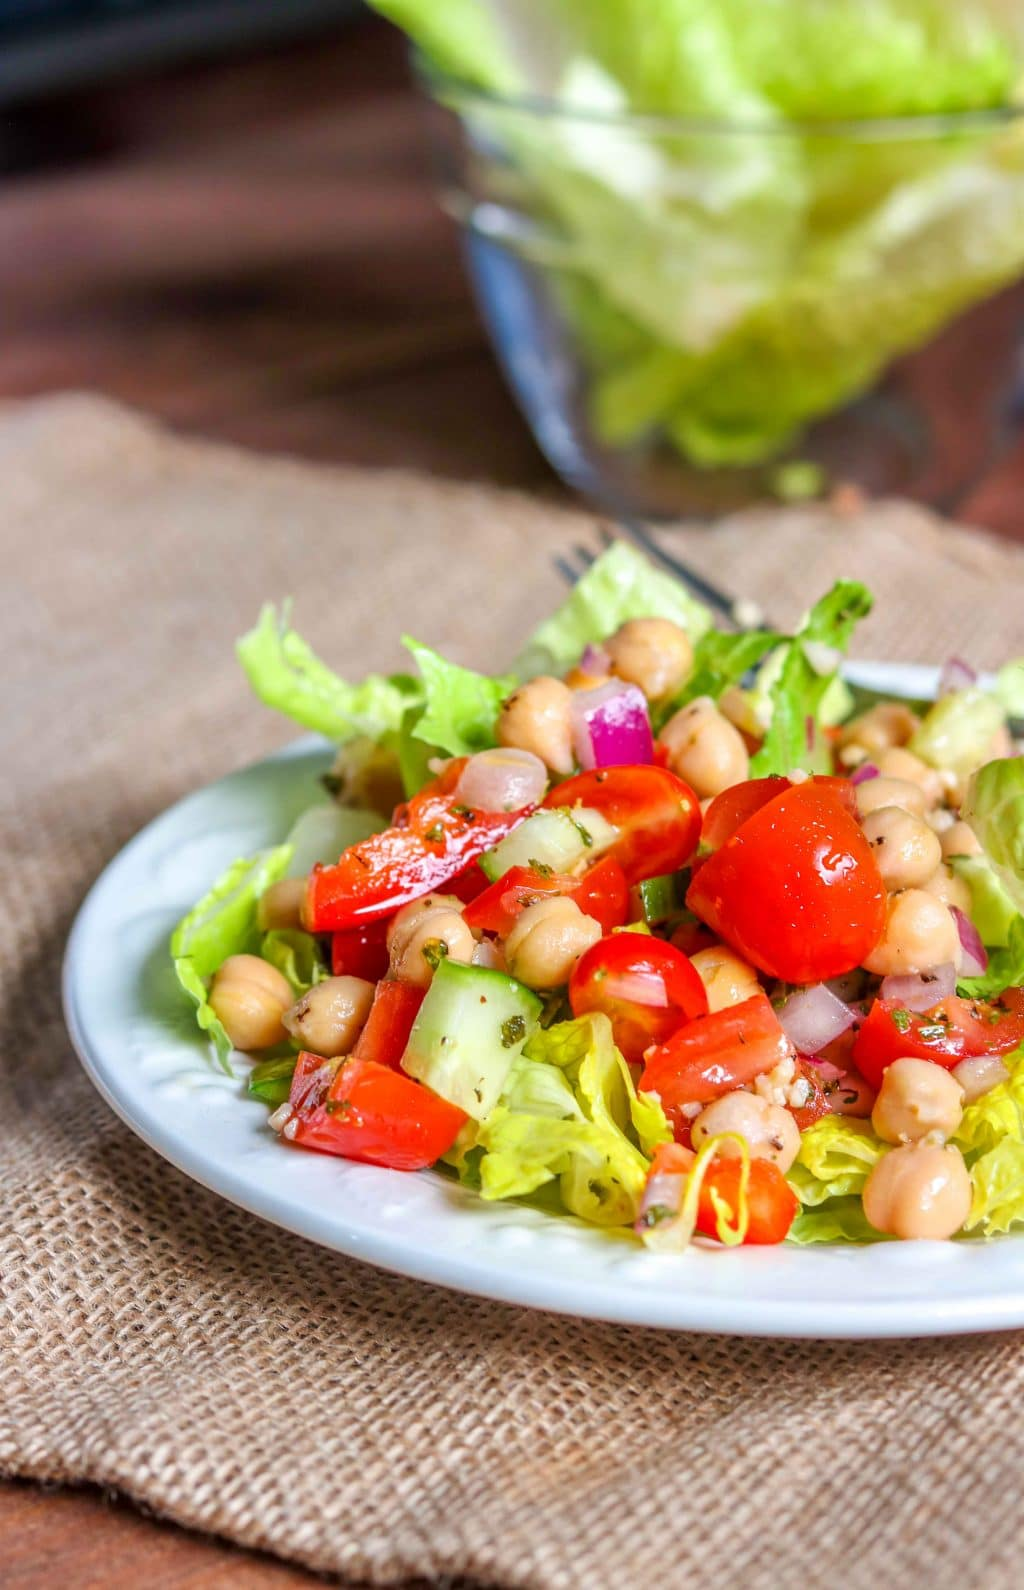 Chickpea salad on a bed of lettuce